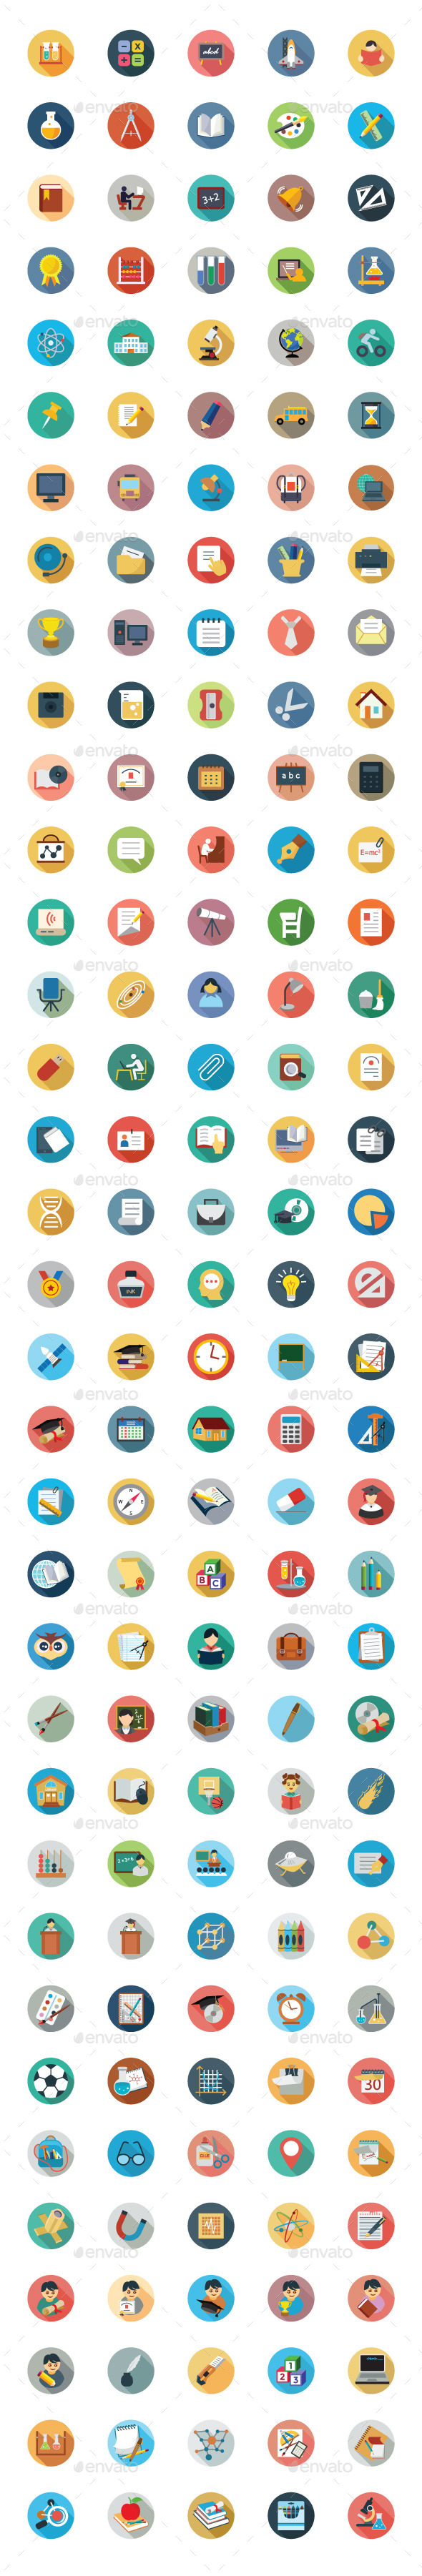 GraphicRiver 175 Education Vector Icons 9774828